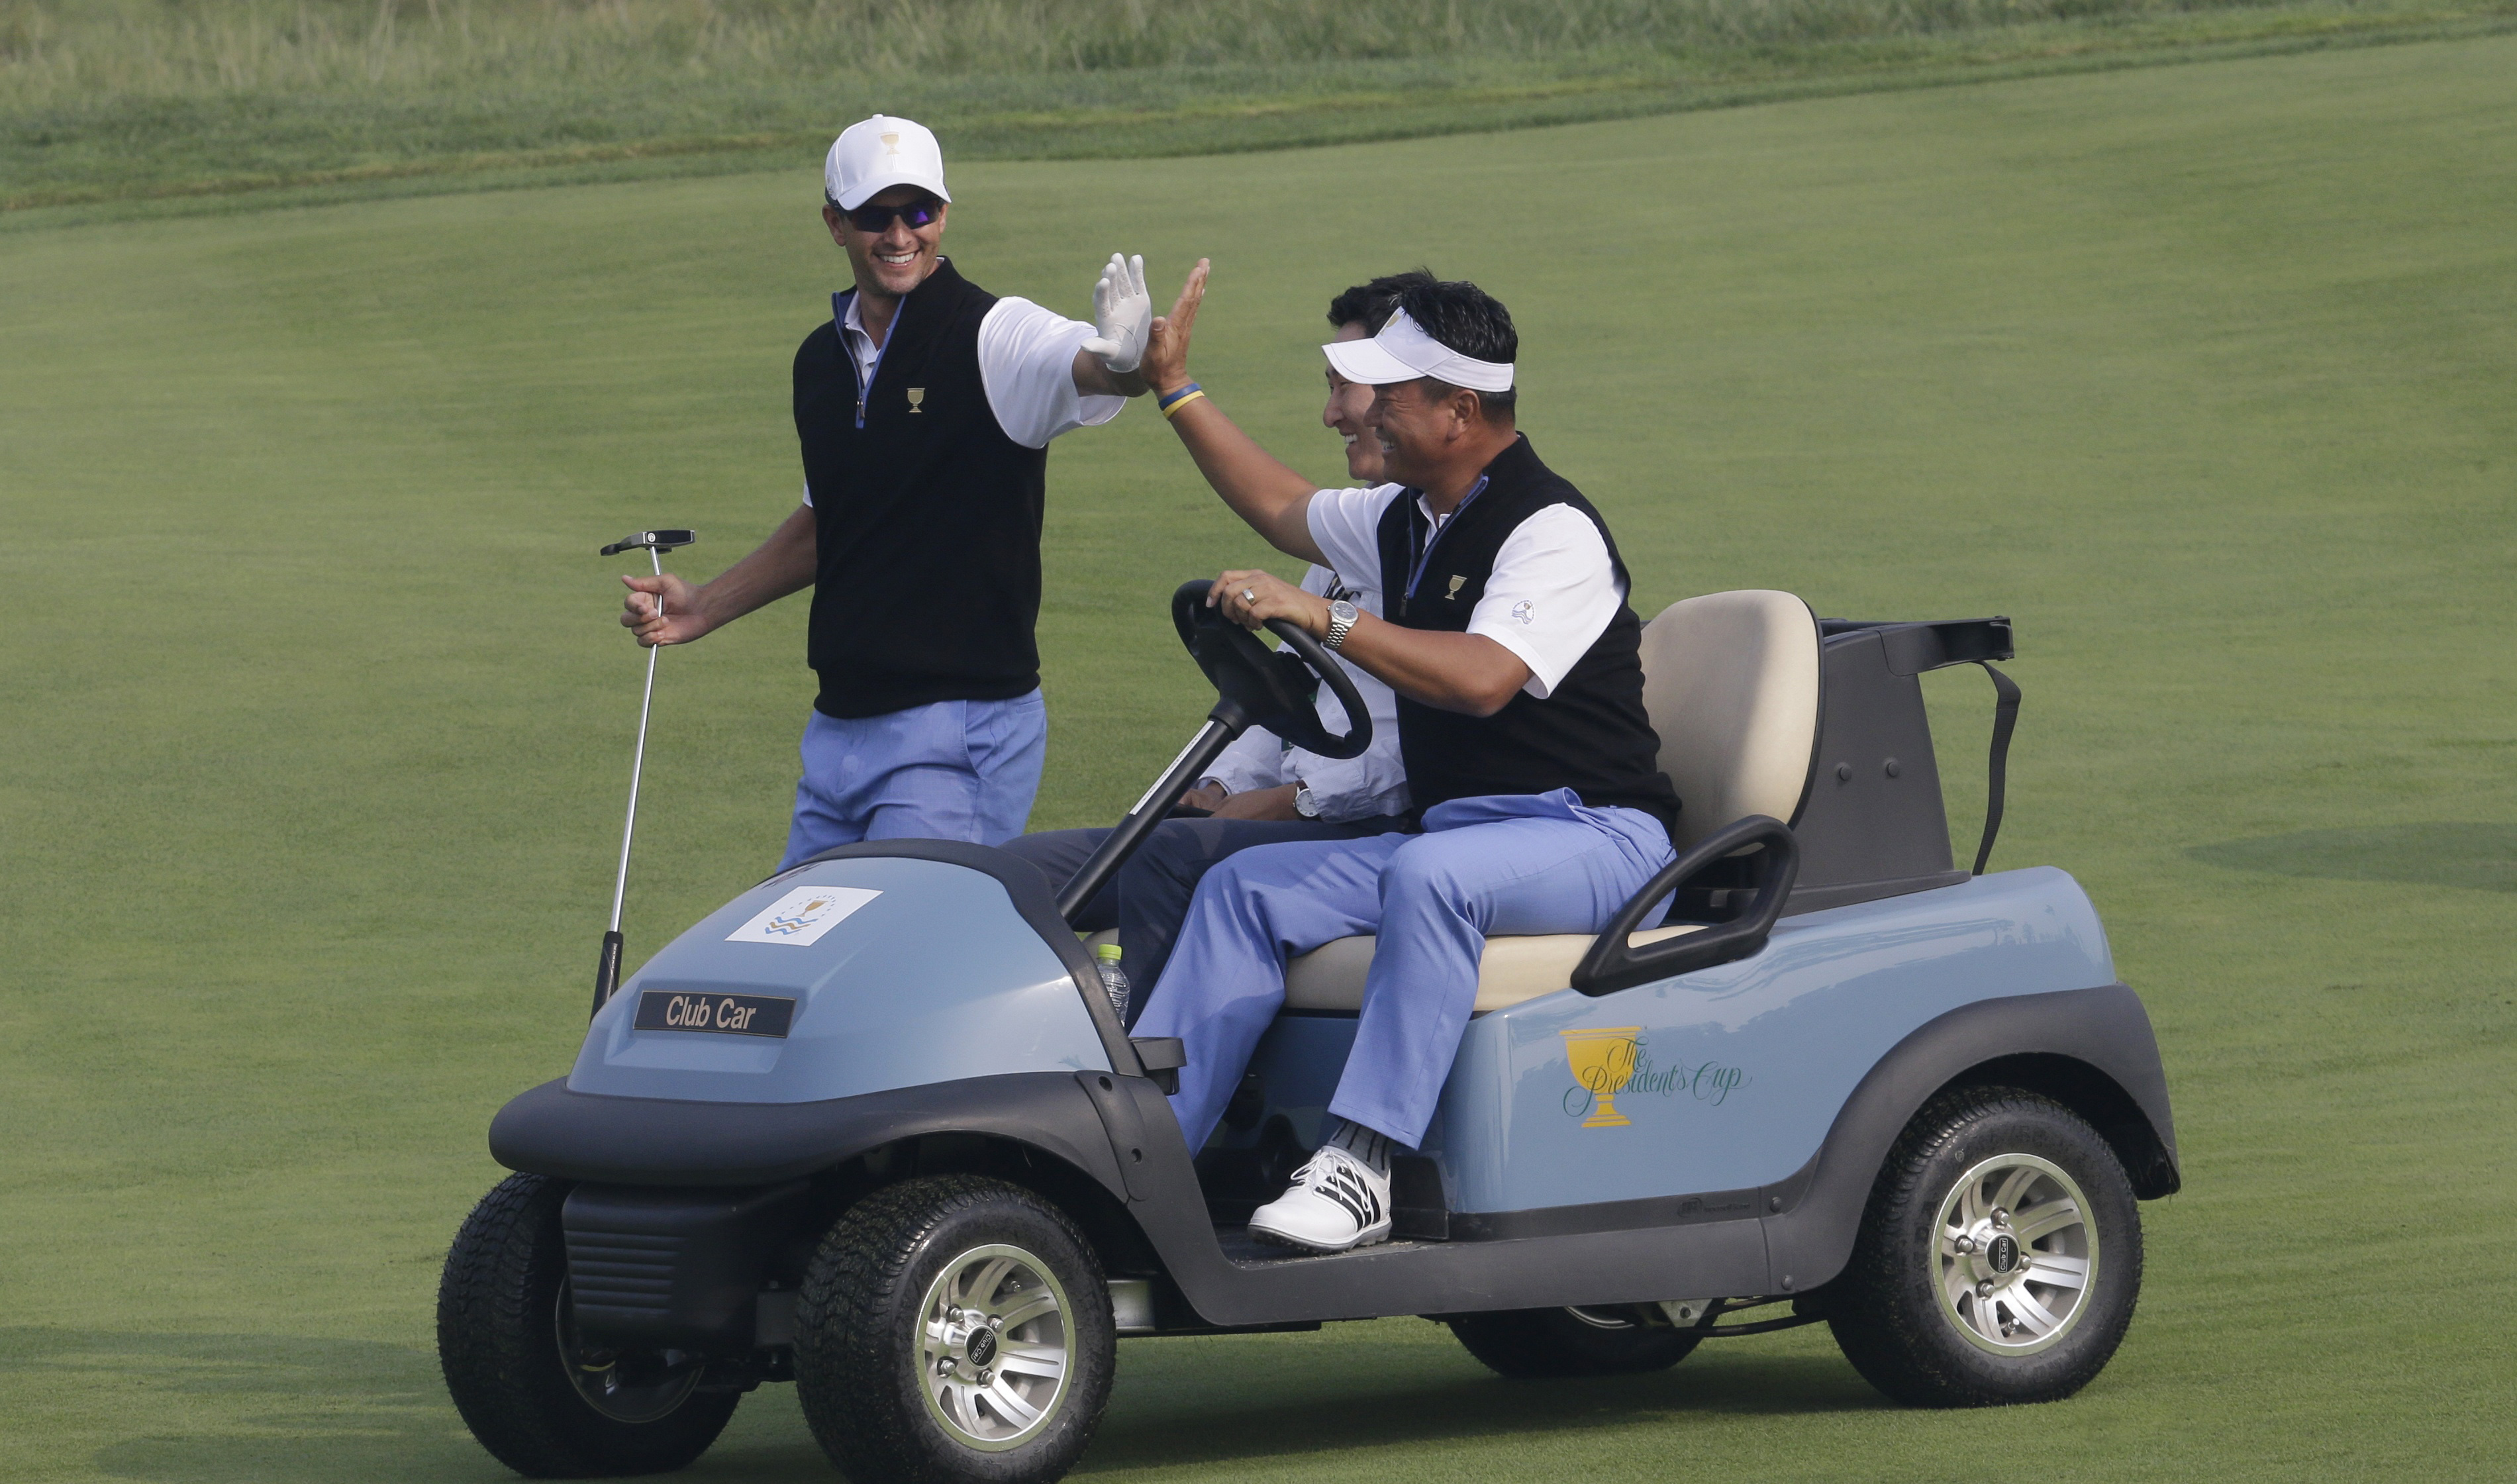 International team player Adam Scott, left, gives a high-five to his team vice-captain K.J. Choi on the 11th hole during a practice round ahead of the Presidents Cup golf tournament at Jack Nicklaus Golf Club Korea in Incheon, South Korea, Wednesday, Oct.